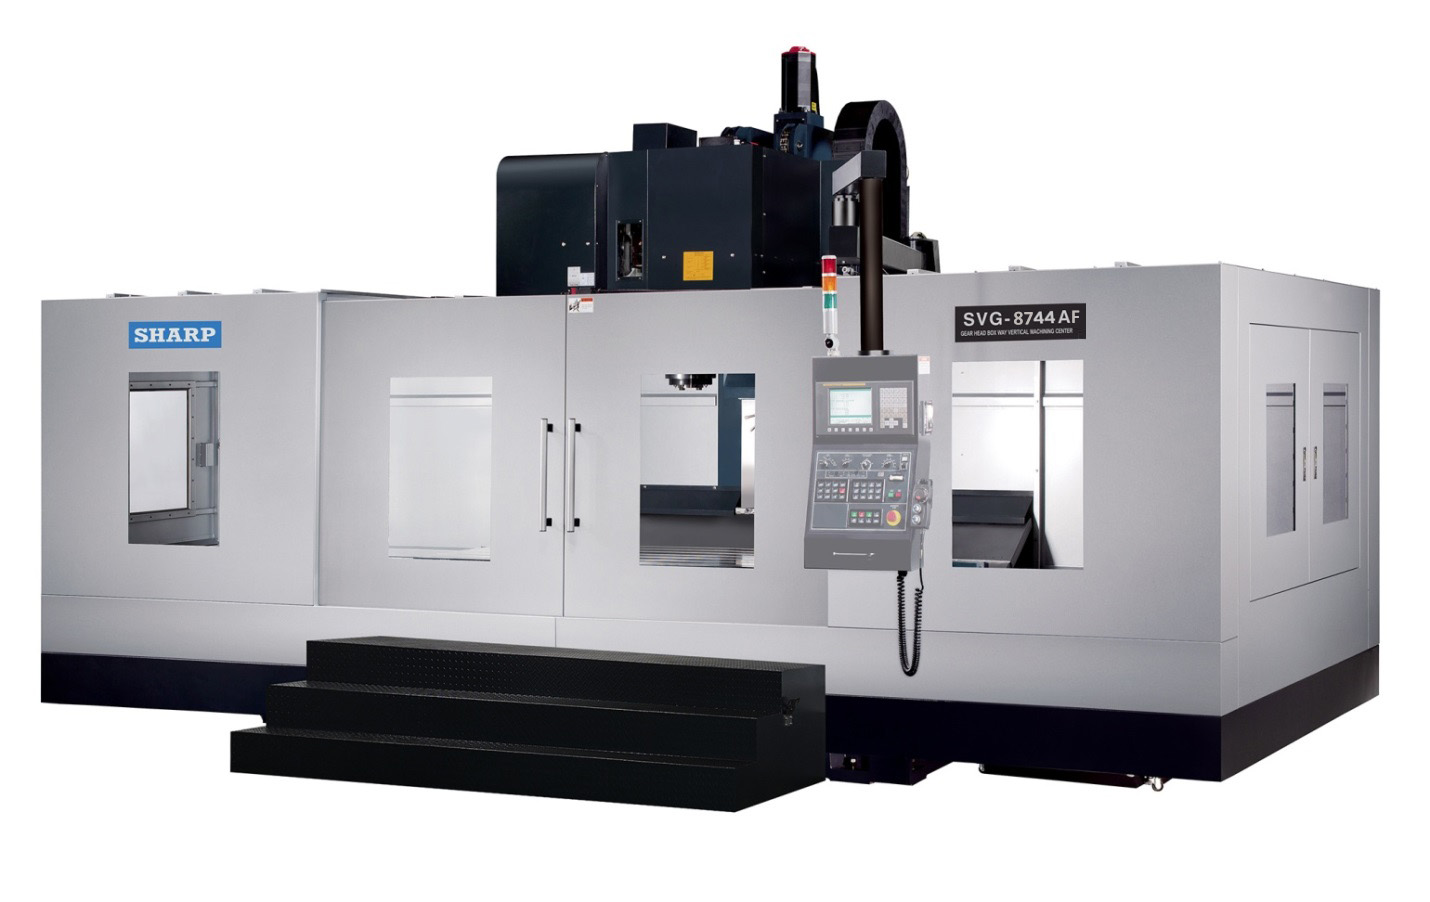 NEW SHARP SVG-8743A-F GEAR HEAD CNC VERTICAL MACHINING CENTER